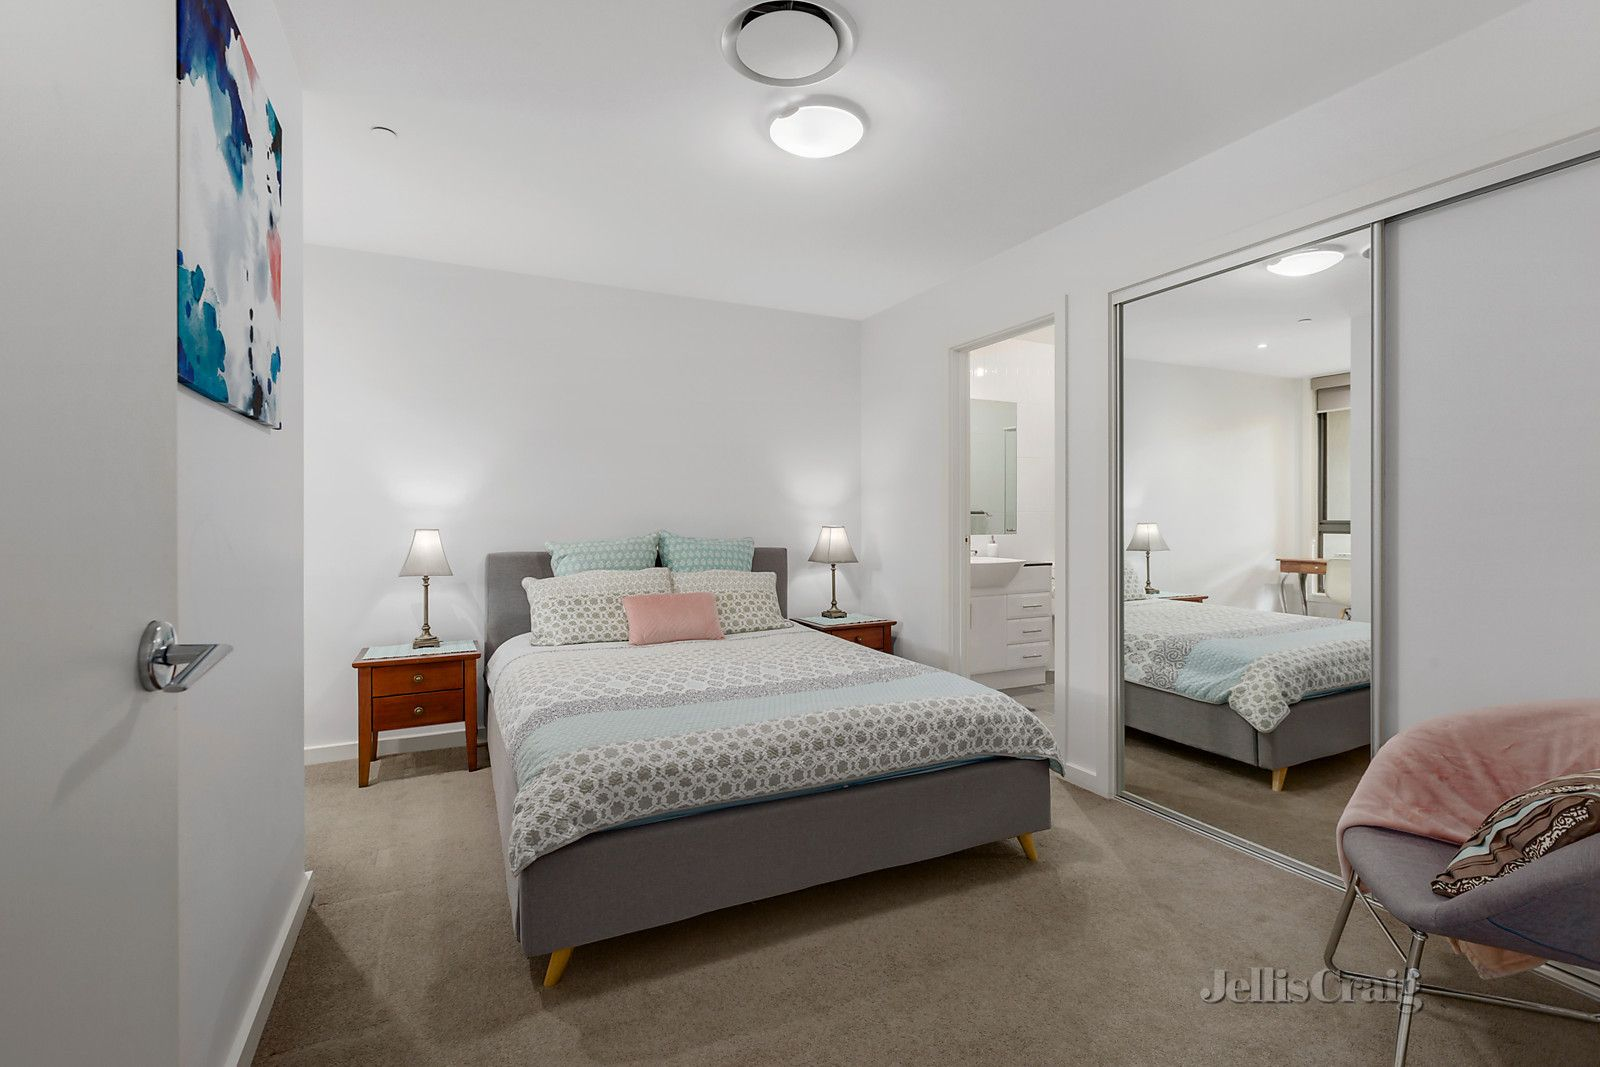 8/107 Whittens Lane, Doncaster VIC 3108, Image 2